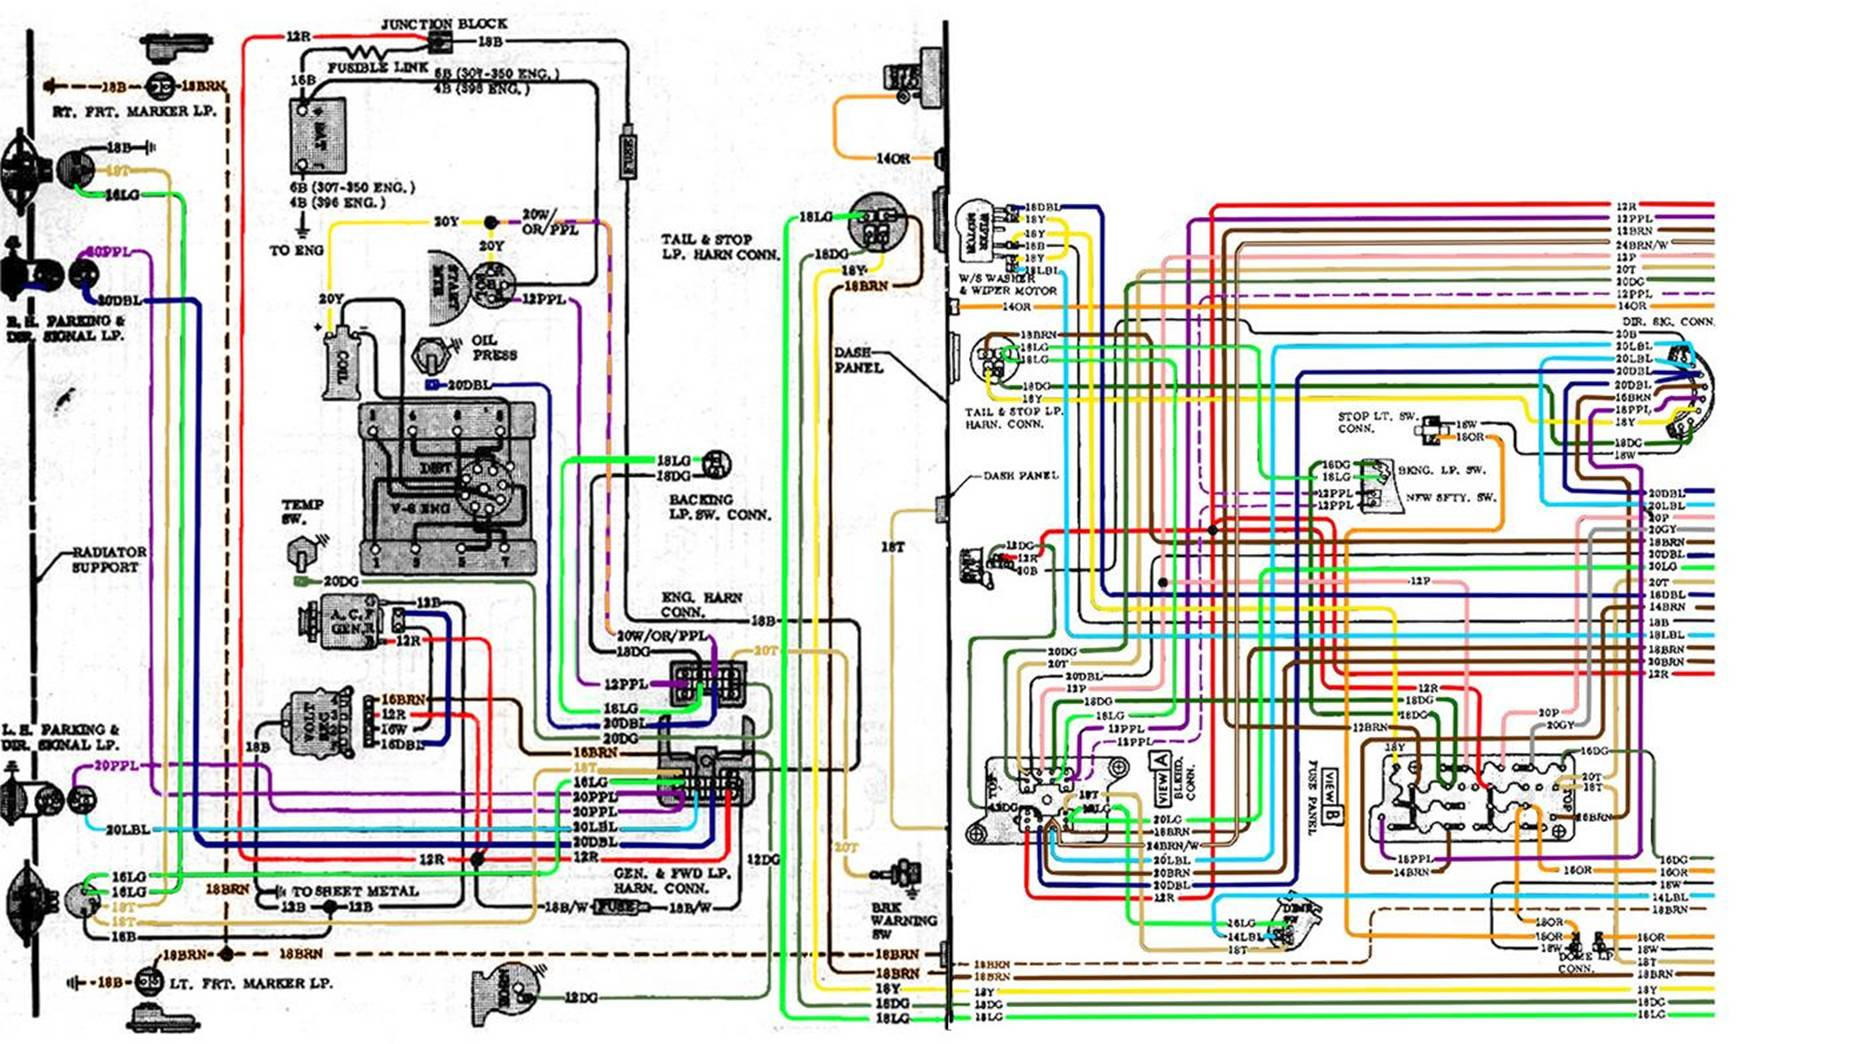 hight resolution of 1968 chevy wiring diagram wiring diagram sys 1968 caprice wiring diagram